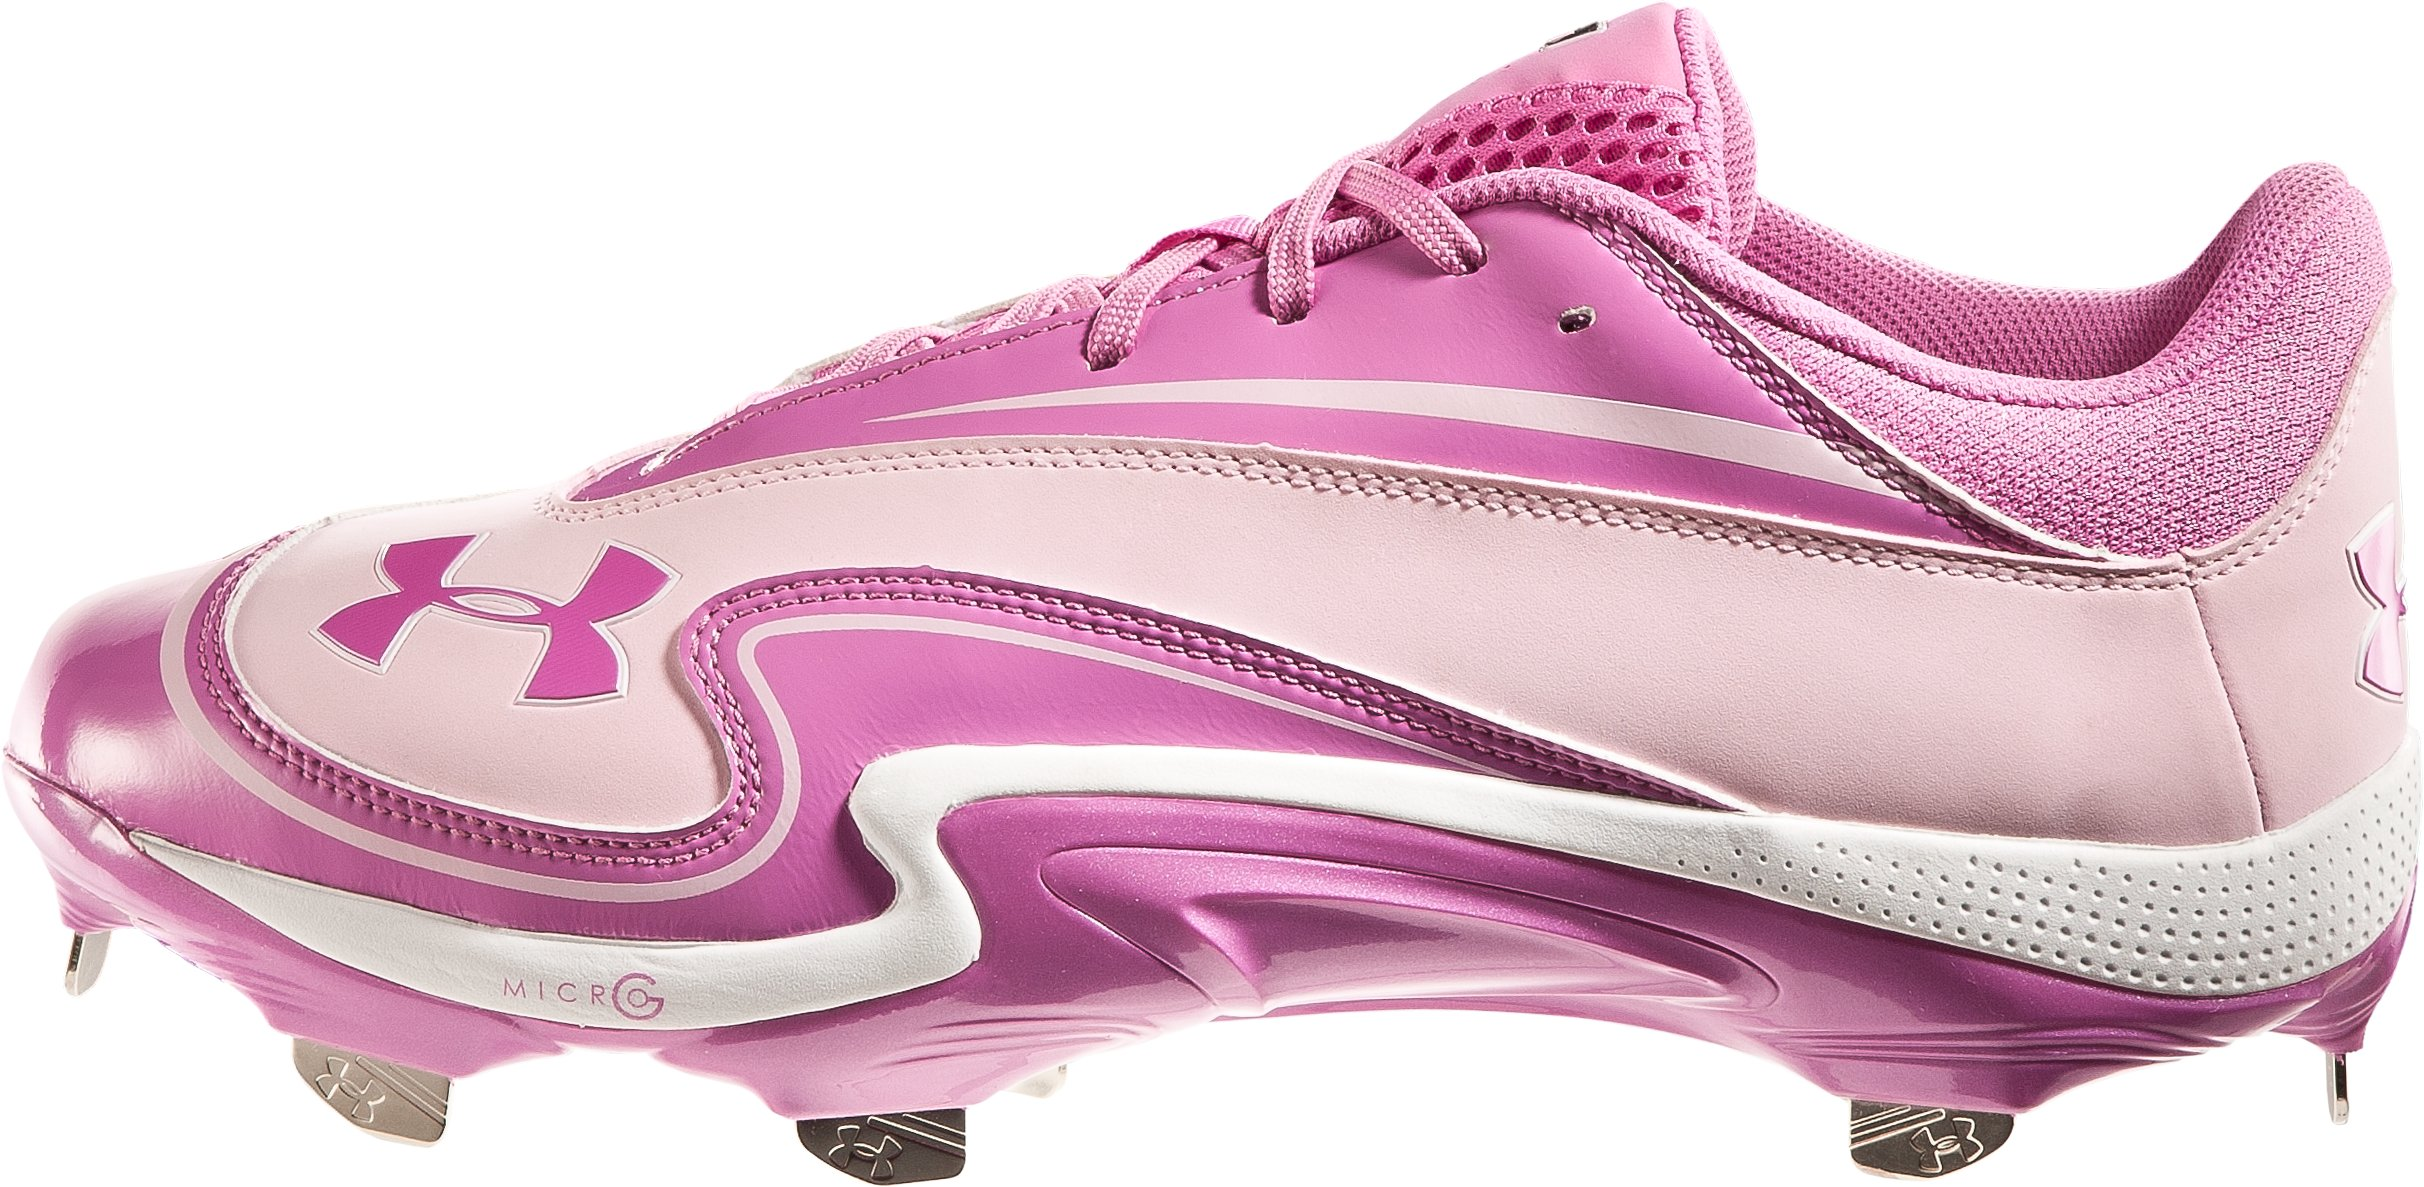 Men's UA Natural III Low ST Baseball Cleats - Special Edition, Pink Power, zoomed image